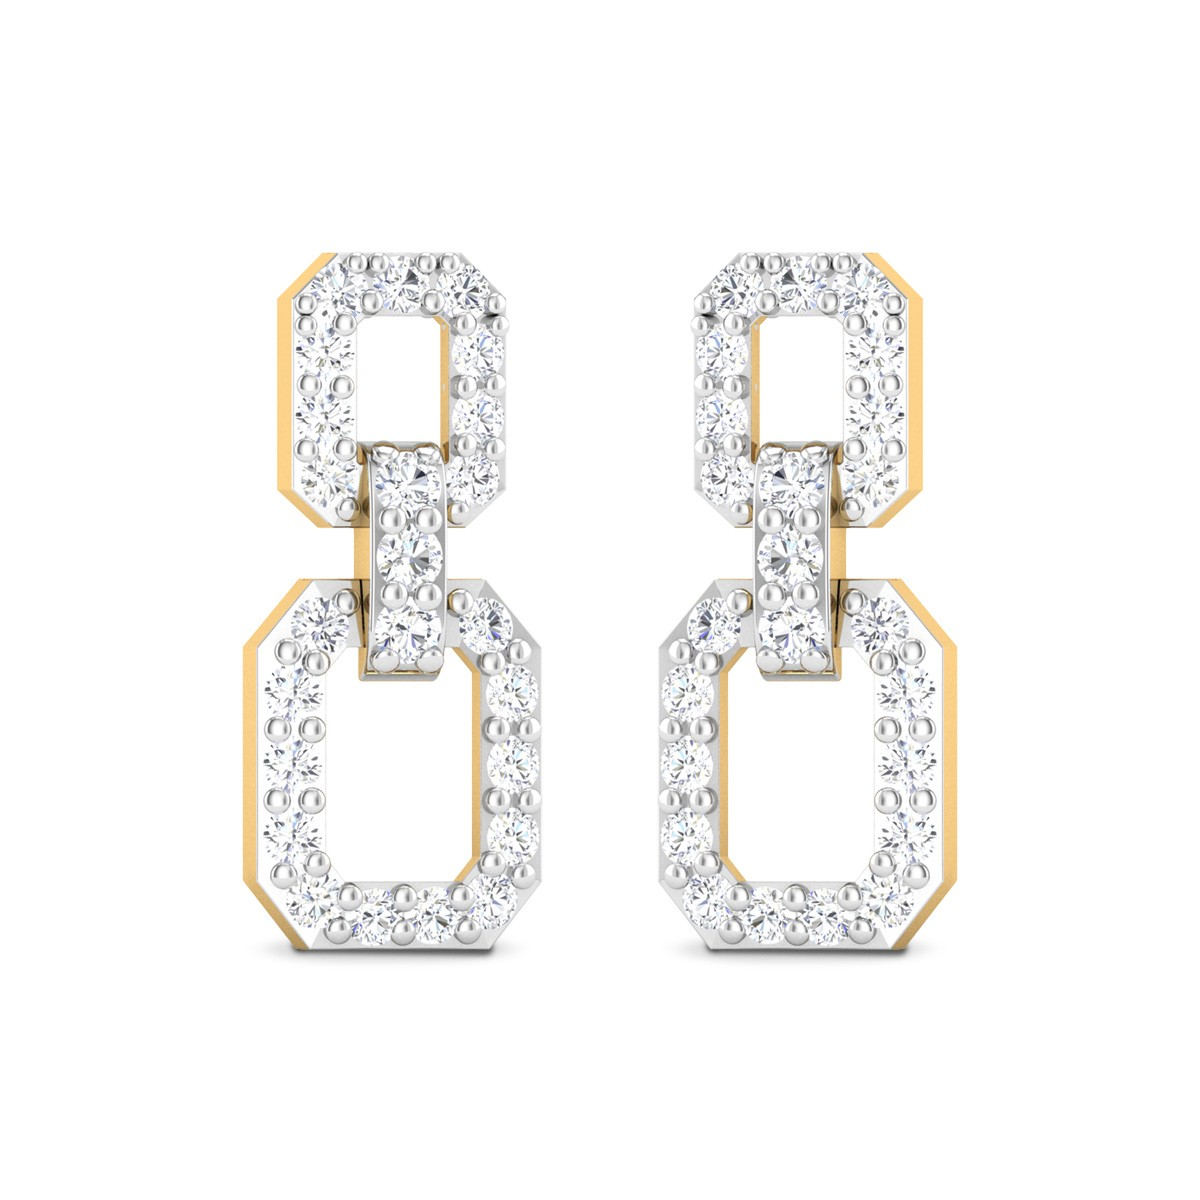 Isabella Diamond Earrings